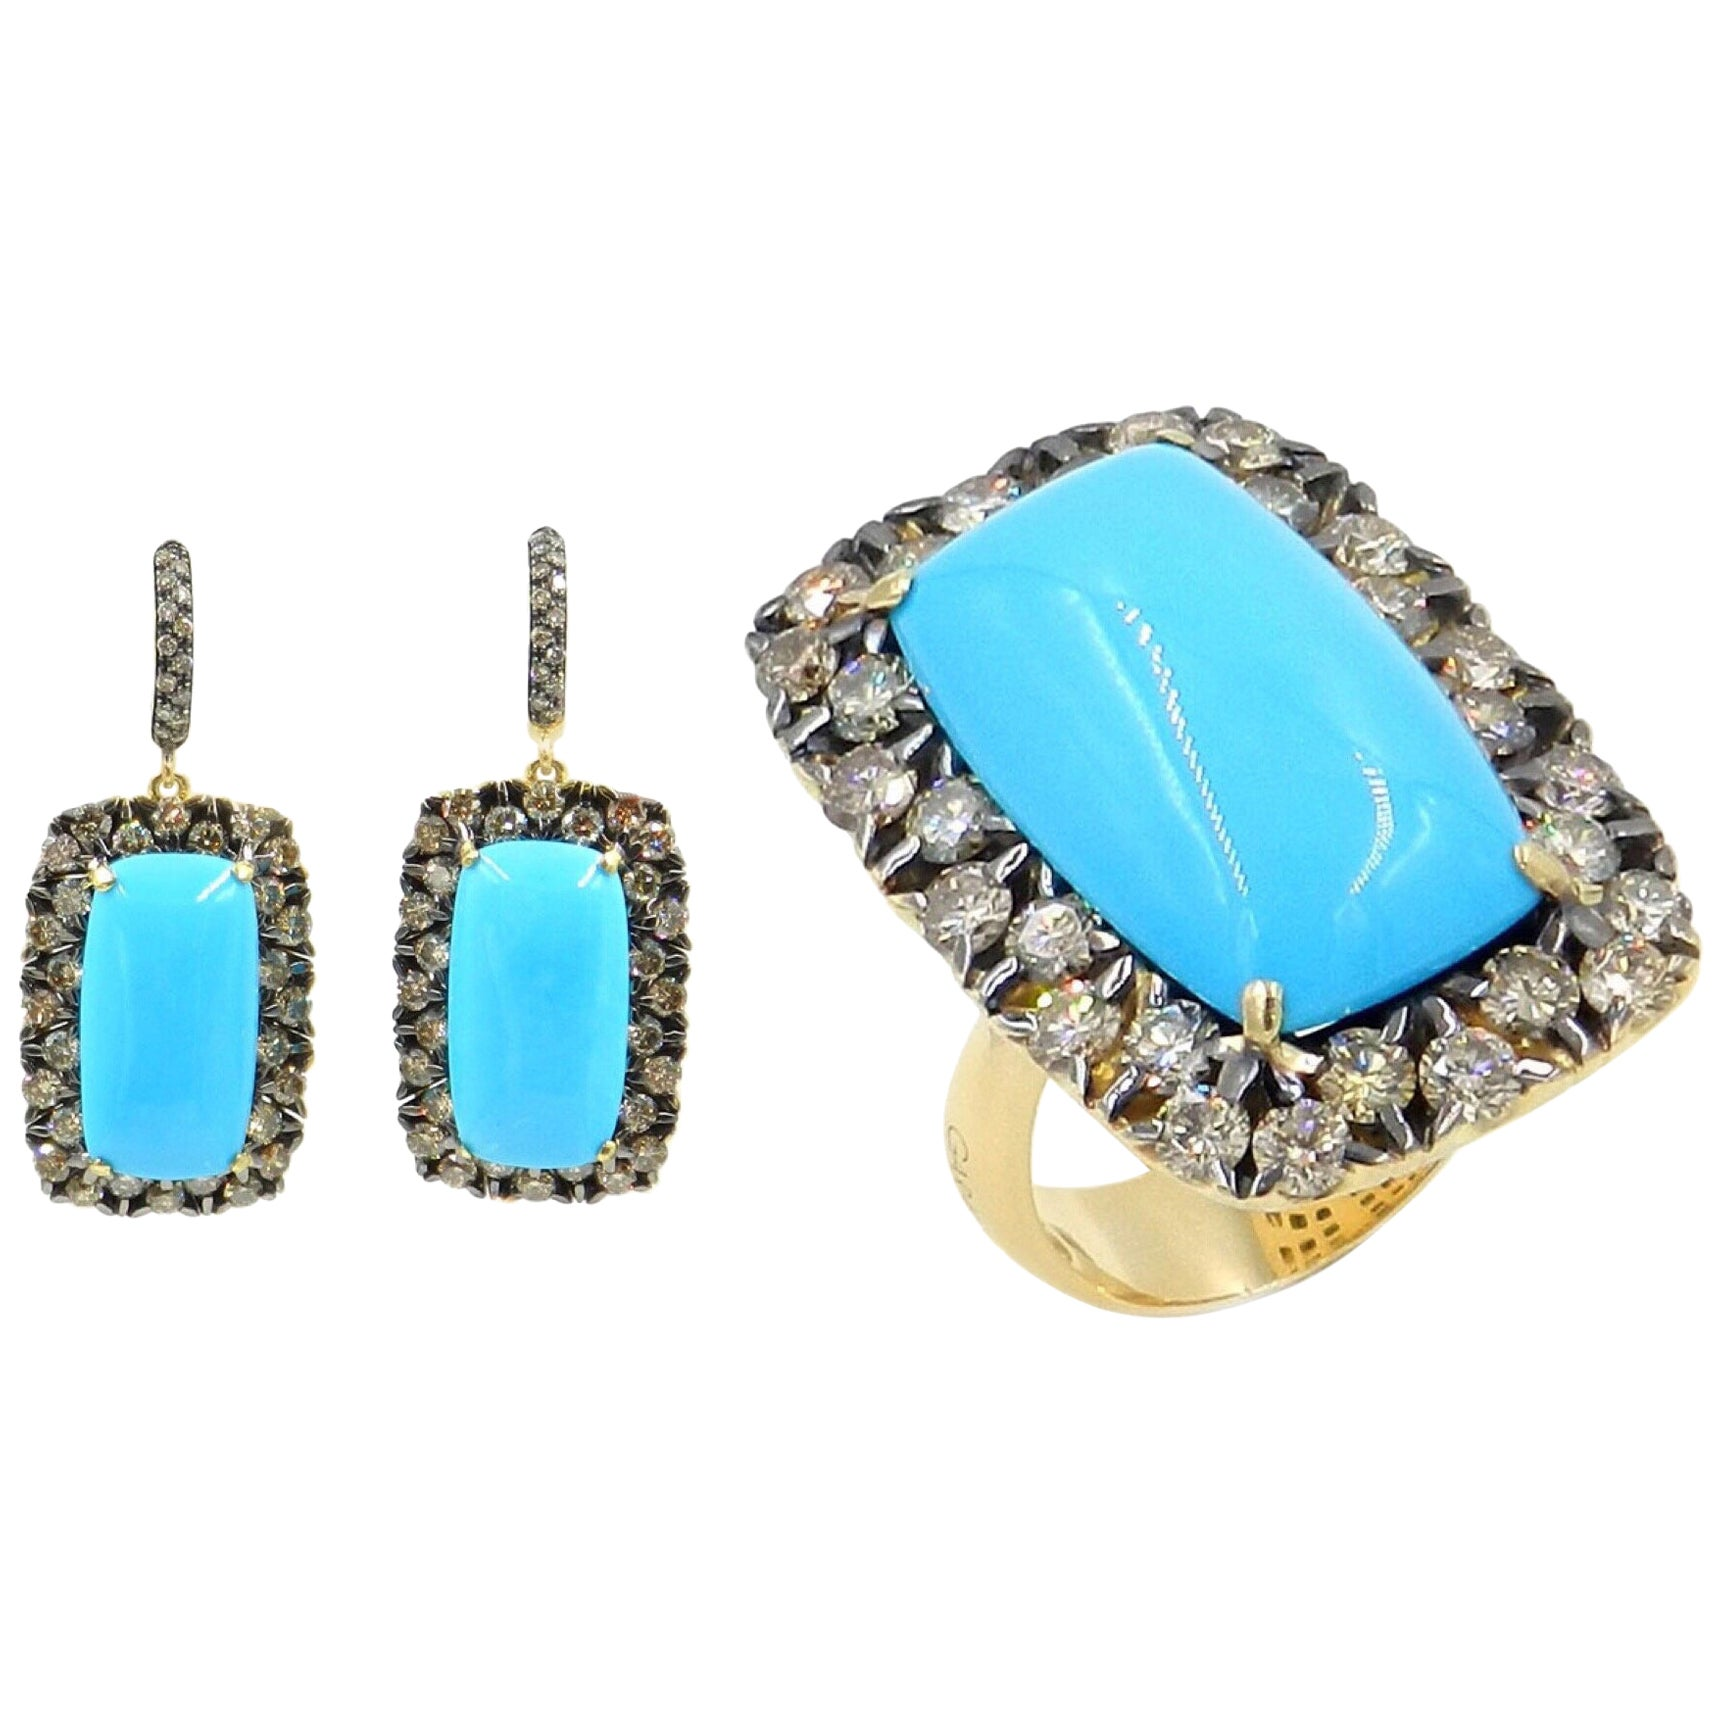 18 Karat Gold Brown Diamonds and Turquoise Garavelli Earrings and Ring Set